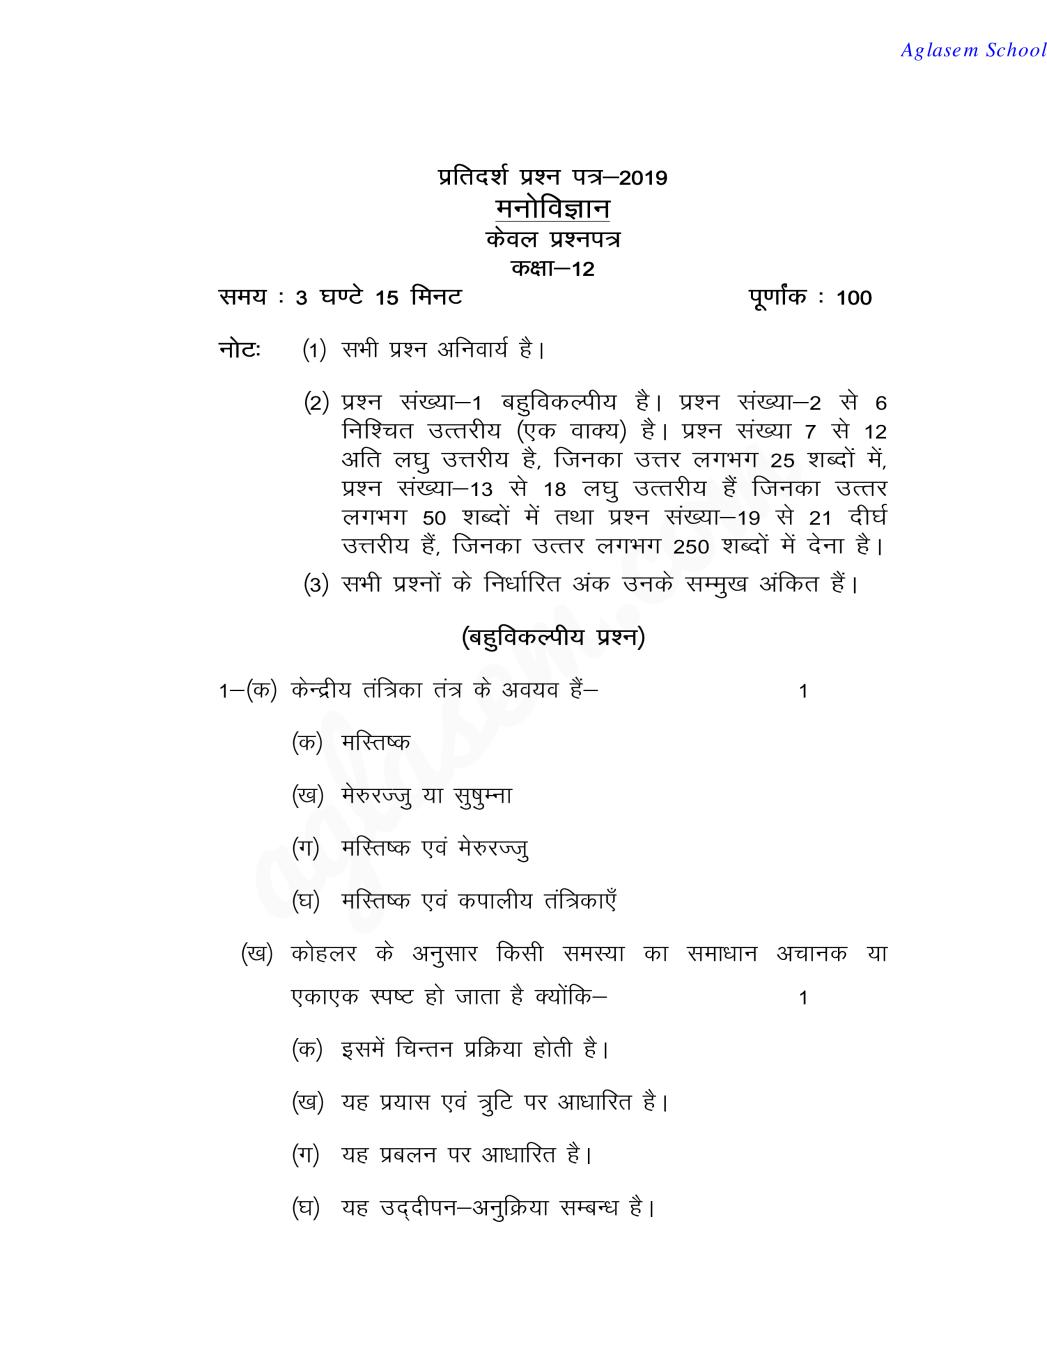 UP Board Model Paper 2020 Class 12th – Psychology